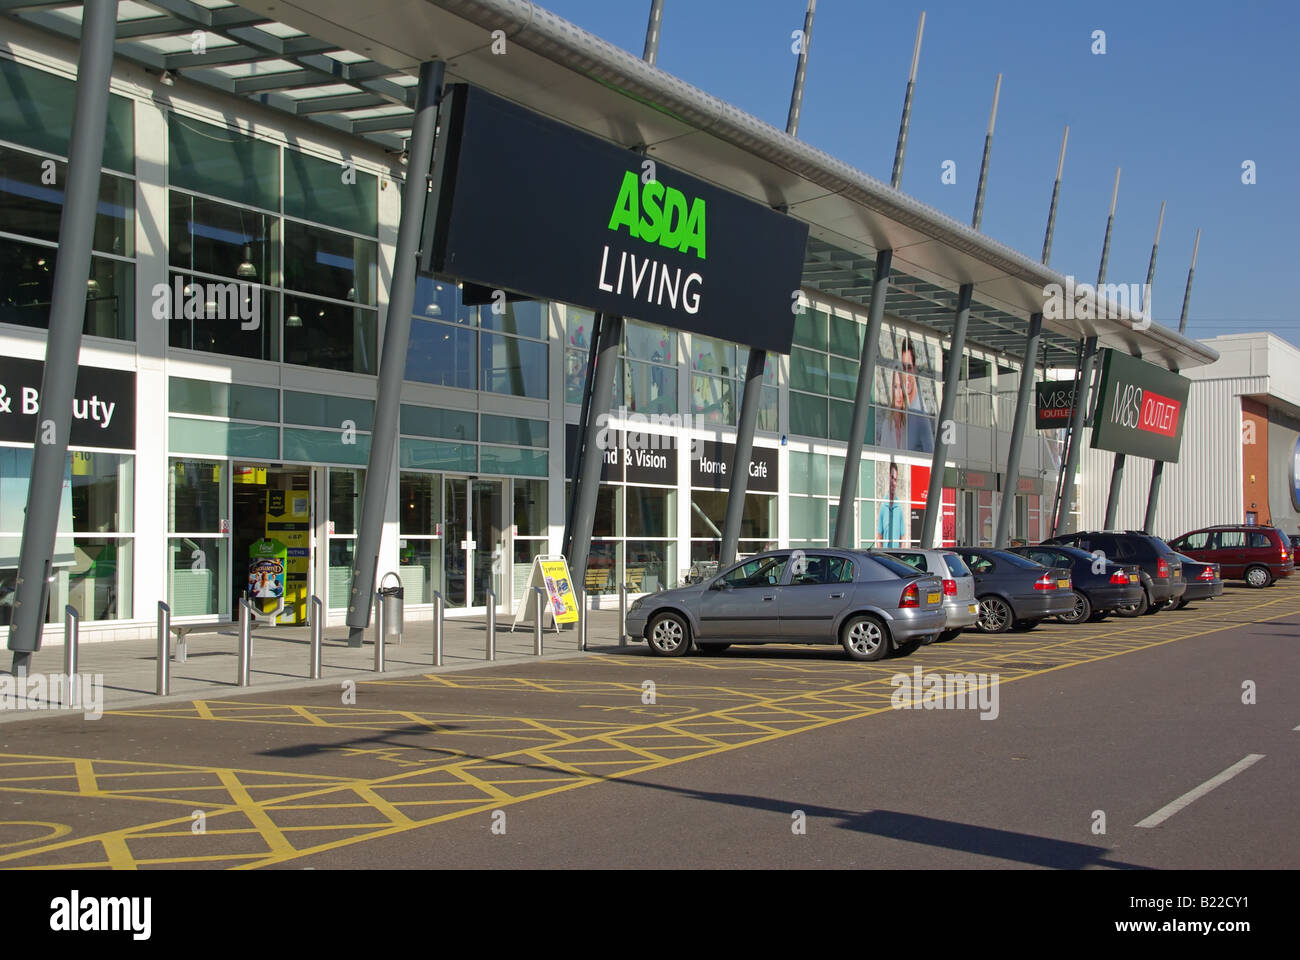 West Thurrock Essex Retail Park Asda Living Store And Free